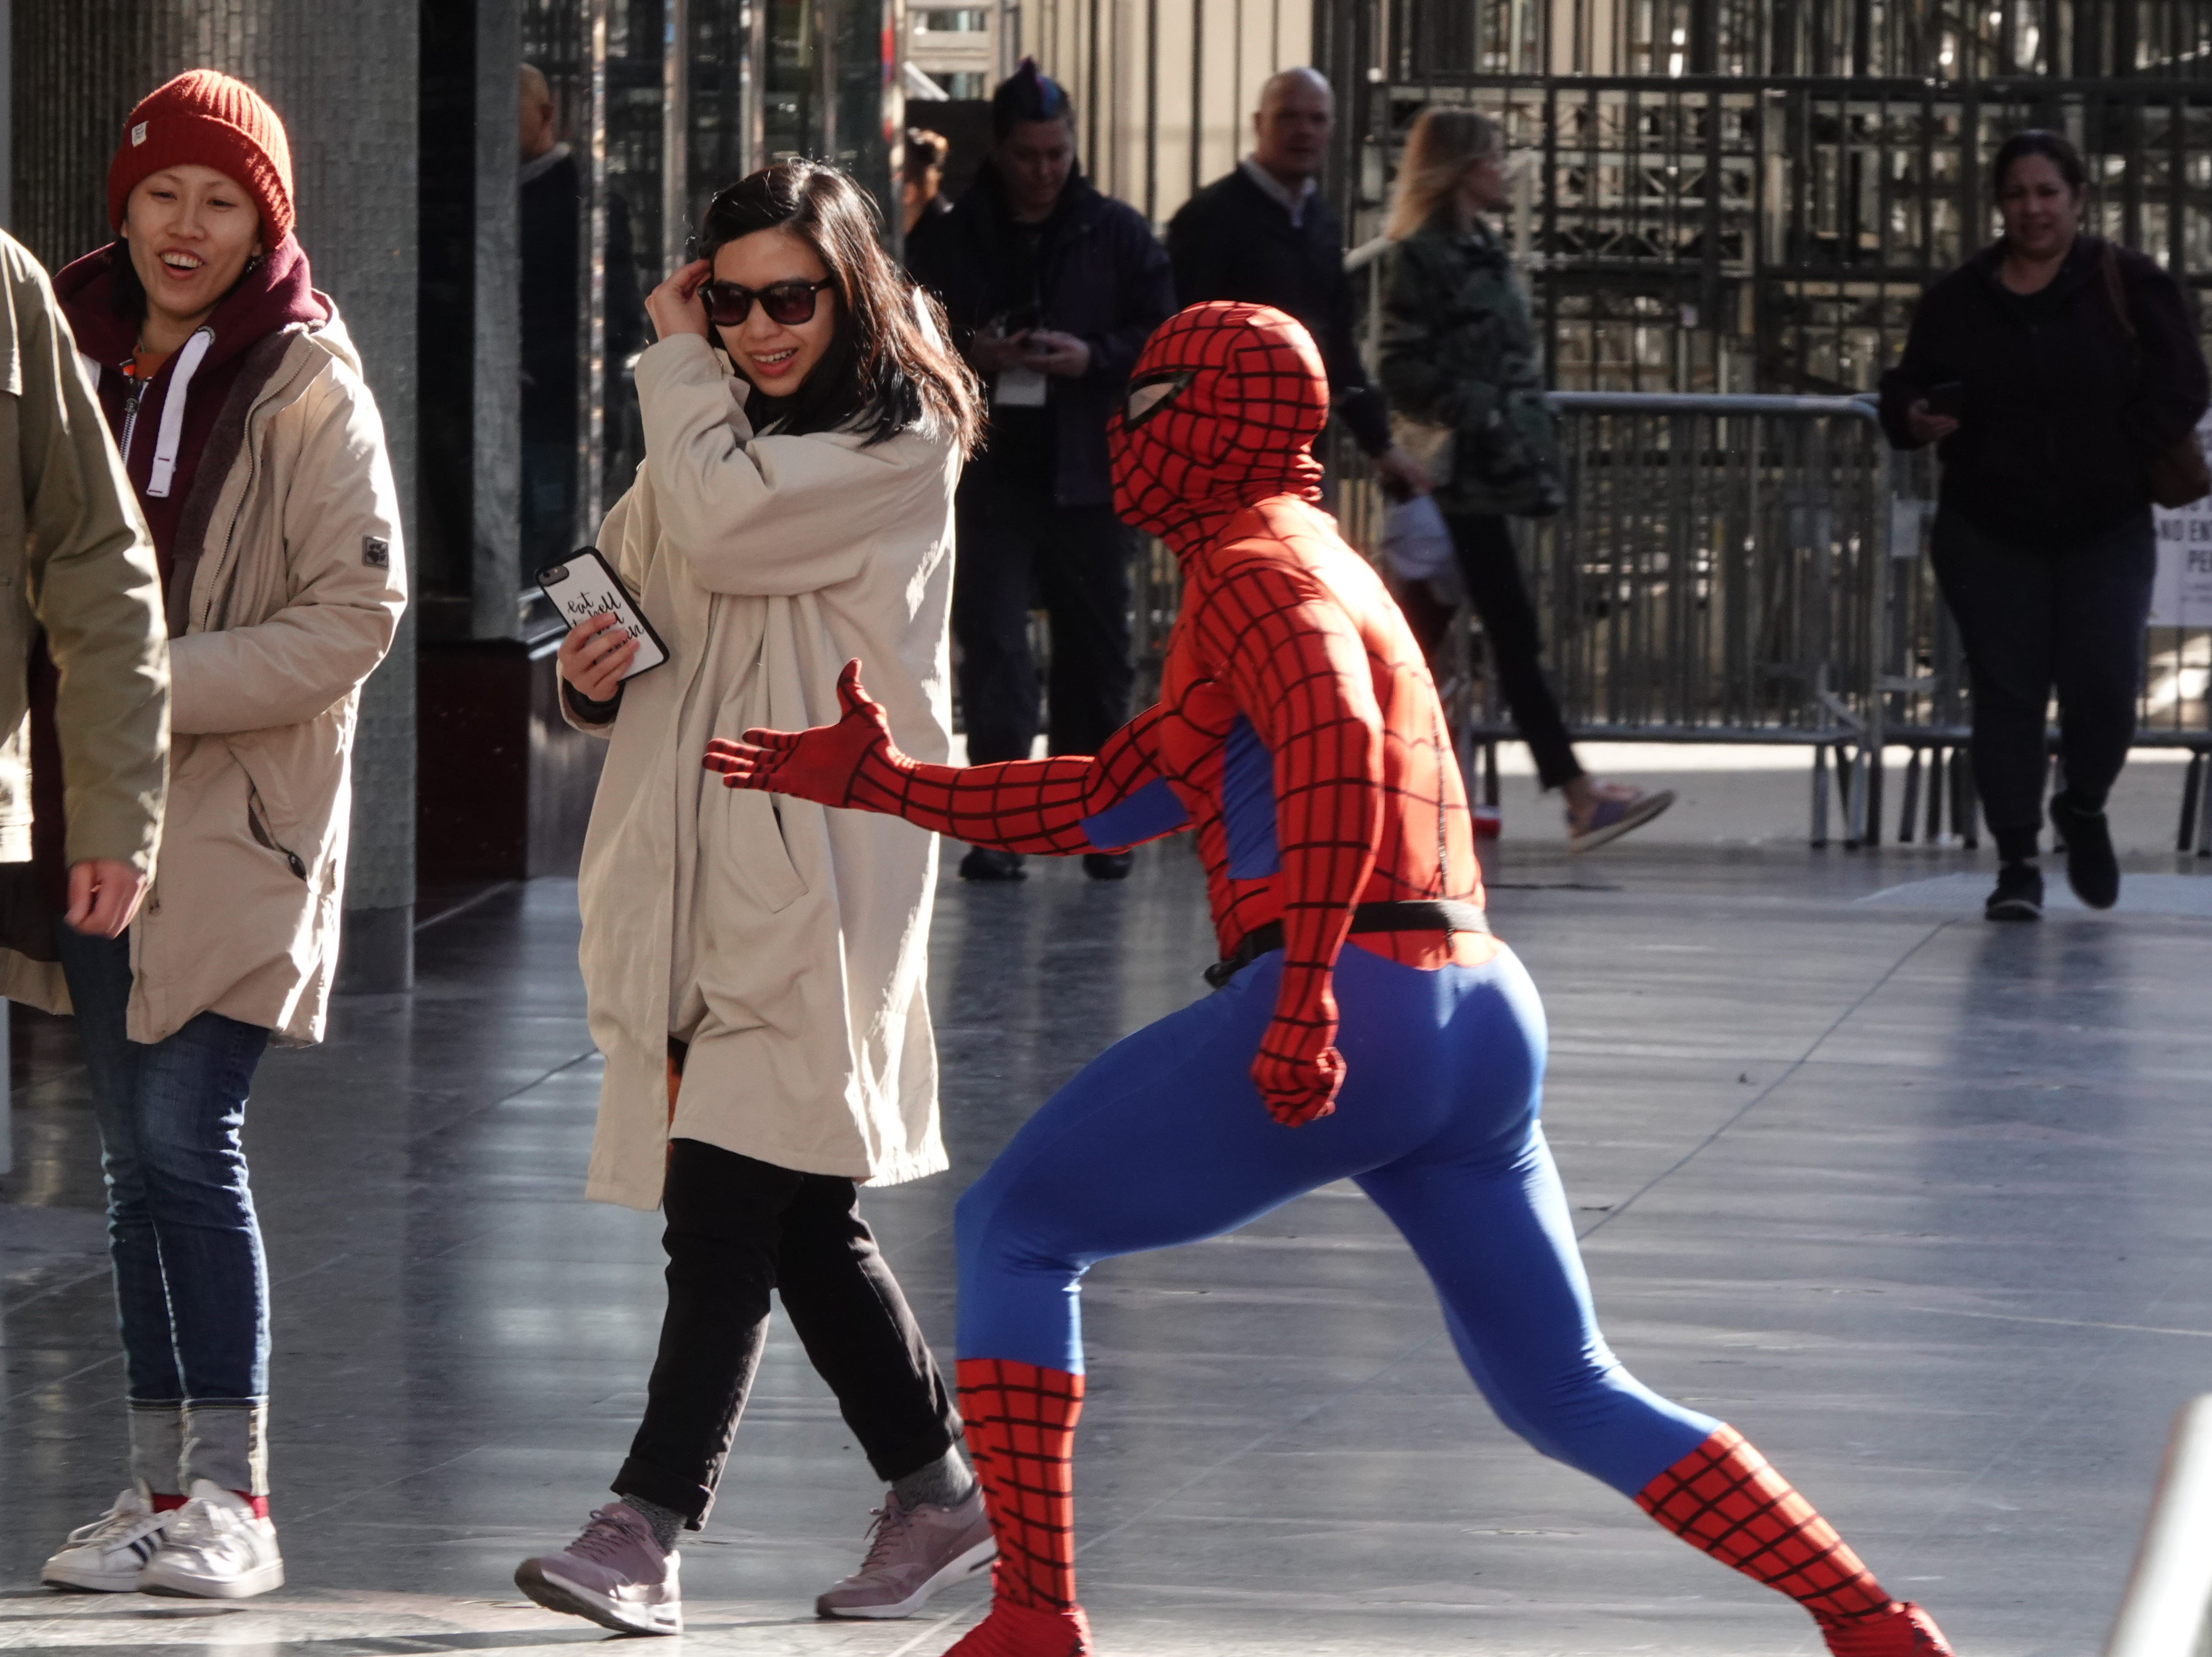 A costumed Spiderman performer tries to stop action on Hollywood Blvd.